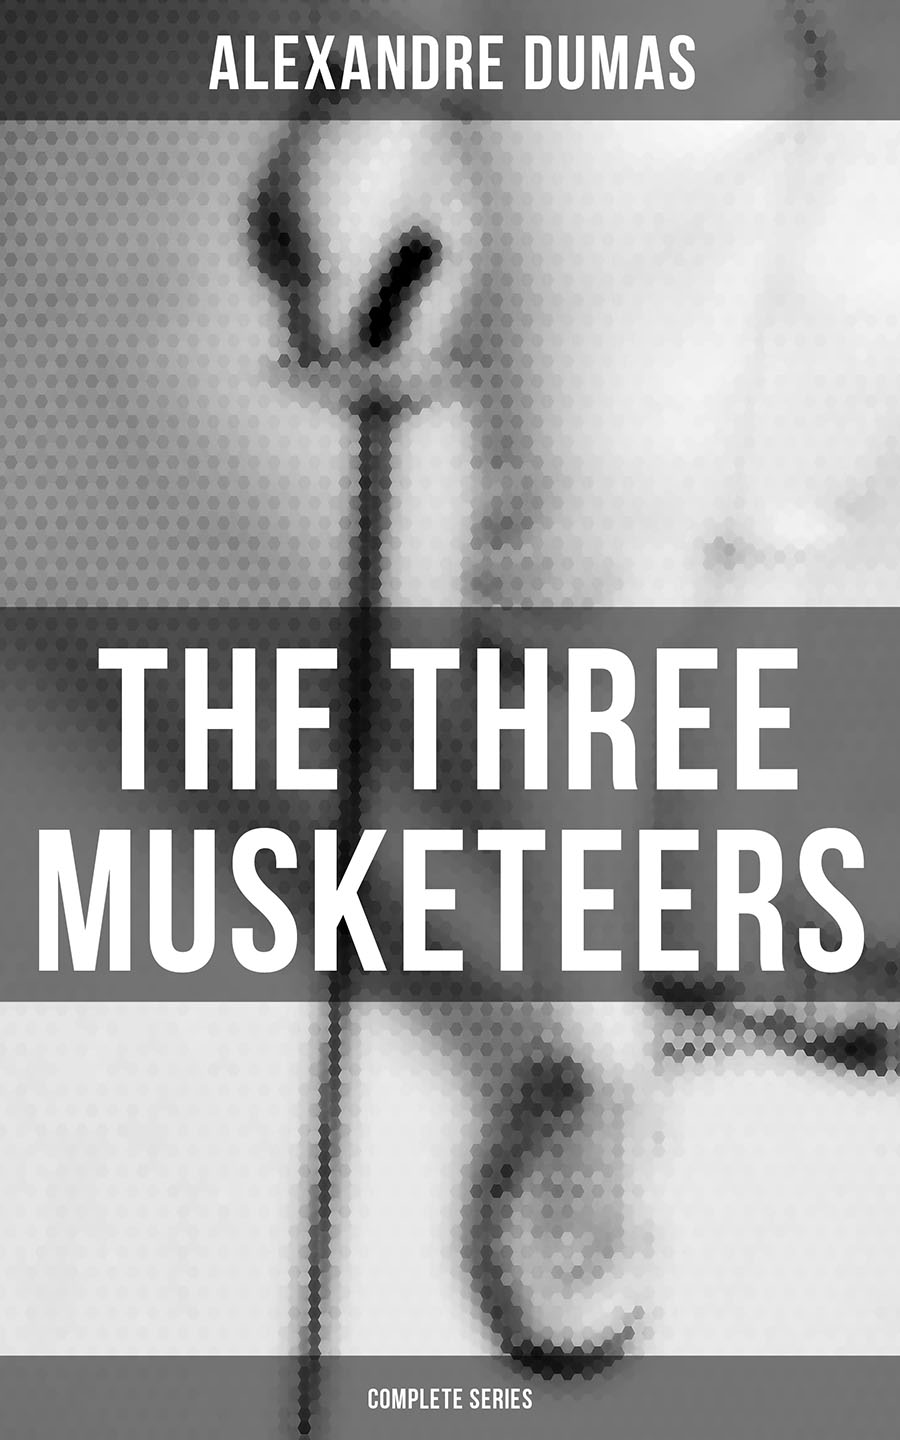 Alexandre Dumas THE THREE MUSKETEERS - Complete Series: The Three Musketeers, Twenty Years After, The Vicomte of Bragelonne, Ten Years Later, Louise da la Valliere & The Man in the Iron Mask lionel decle three years in savage africa